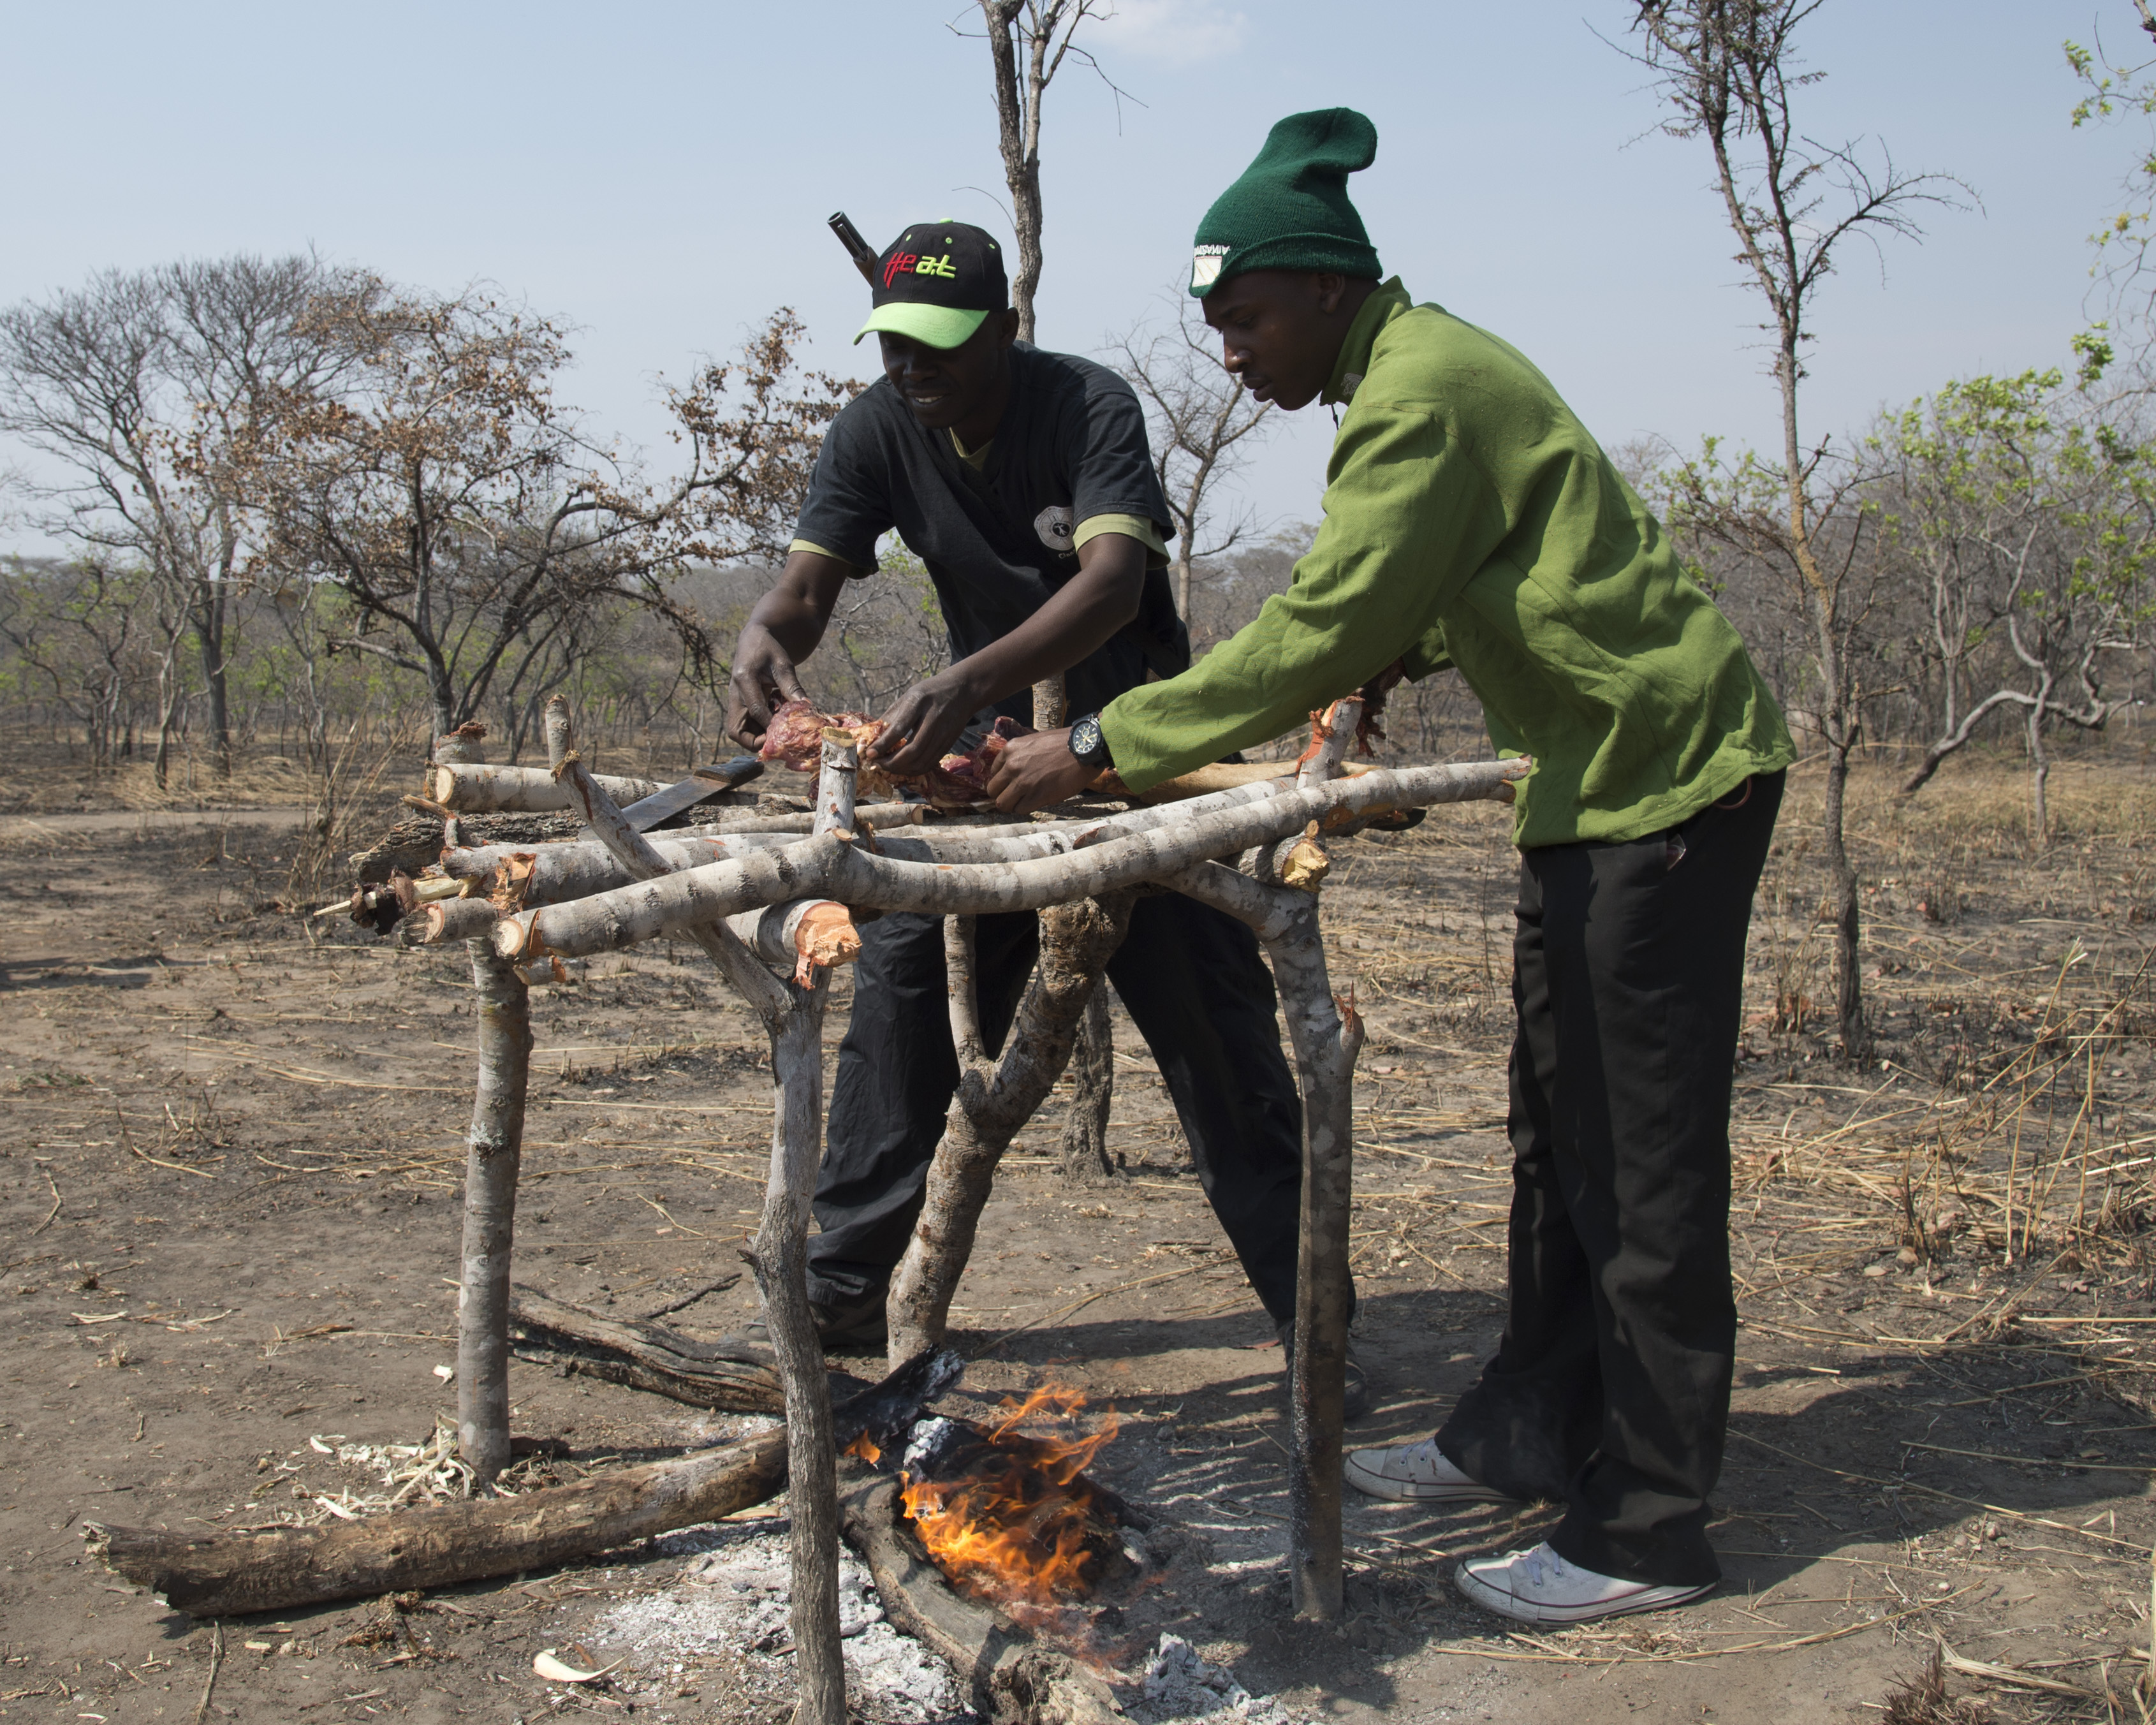 Tanzania park and game reserve rangers, acting as poachers, cook meat from a game reserve animal as part of demonstration August 24, 2016, at Rungwa Game Reserve, Tanzania. The scenario was based around rangers locating a camp of poachers who illegally killed an elephant to harvest its ivory. Rangers recently trained with members of the 403rd Civil Affairs Battalion, a component of Combined Joint Task Force - Horn of Africa, and North Carolina Army National Guard to learn techniques to track and capture poachers. (U.S. Air Force photo by Staff Sgt. Eric Summers Jr.)